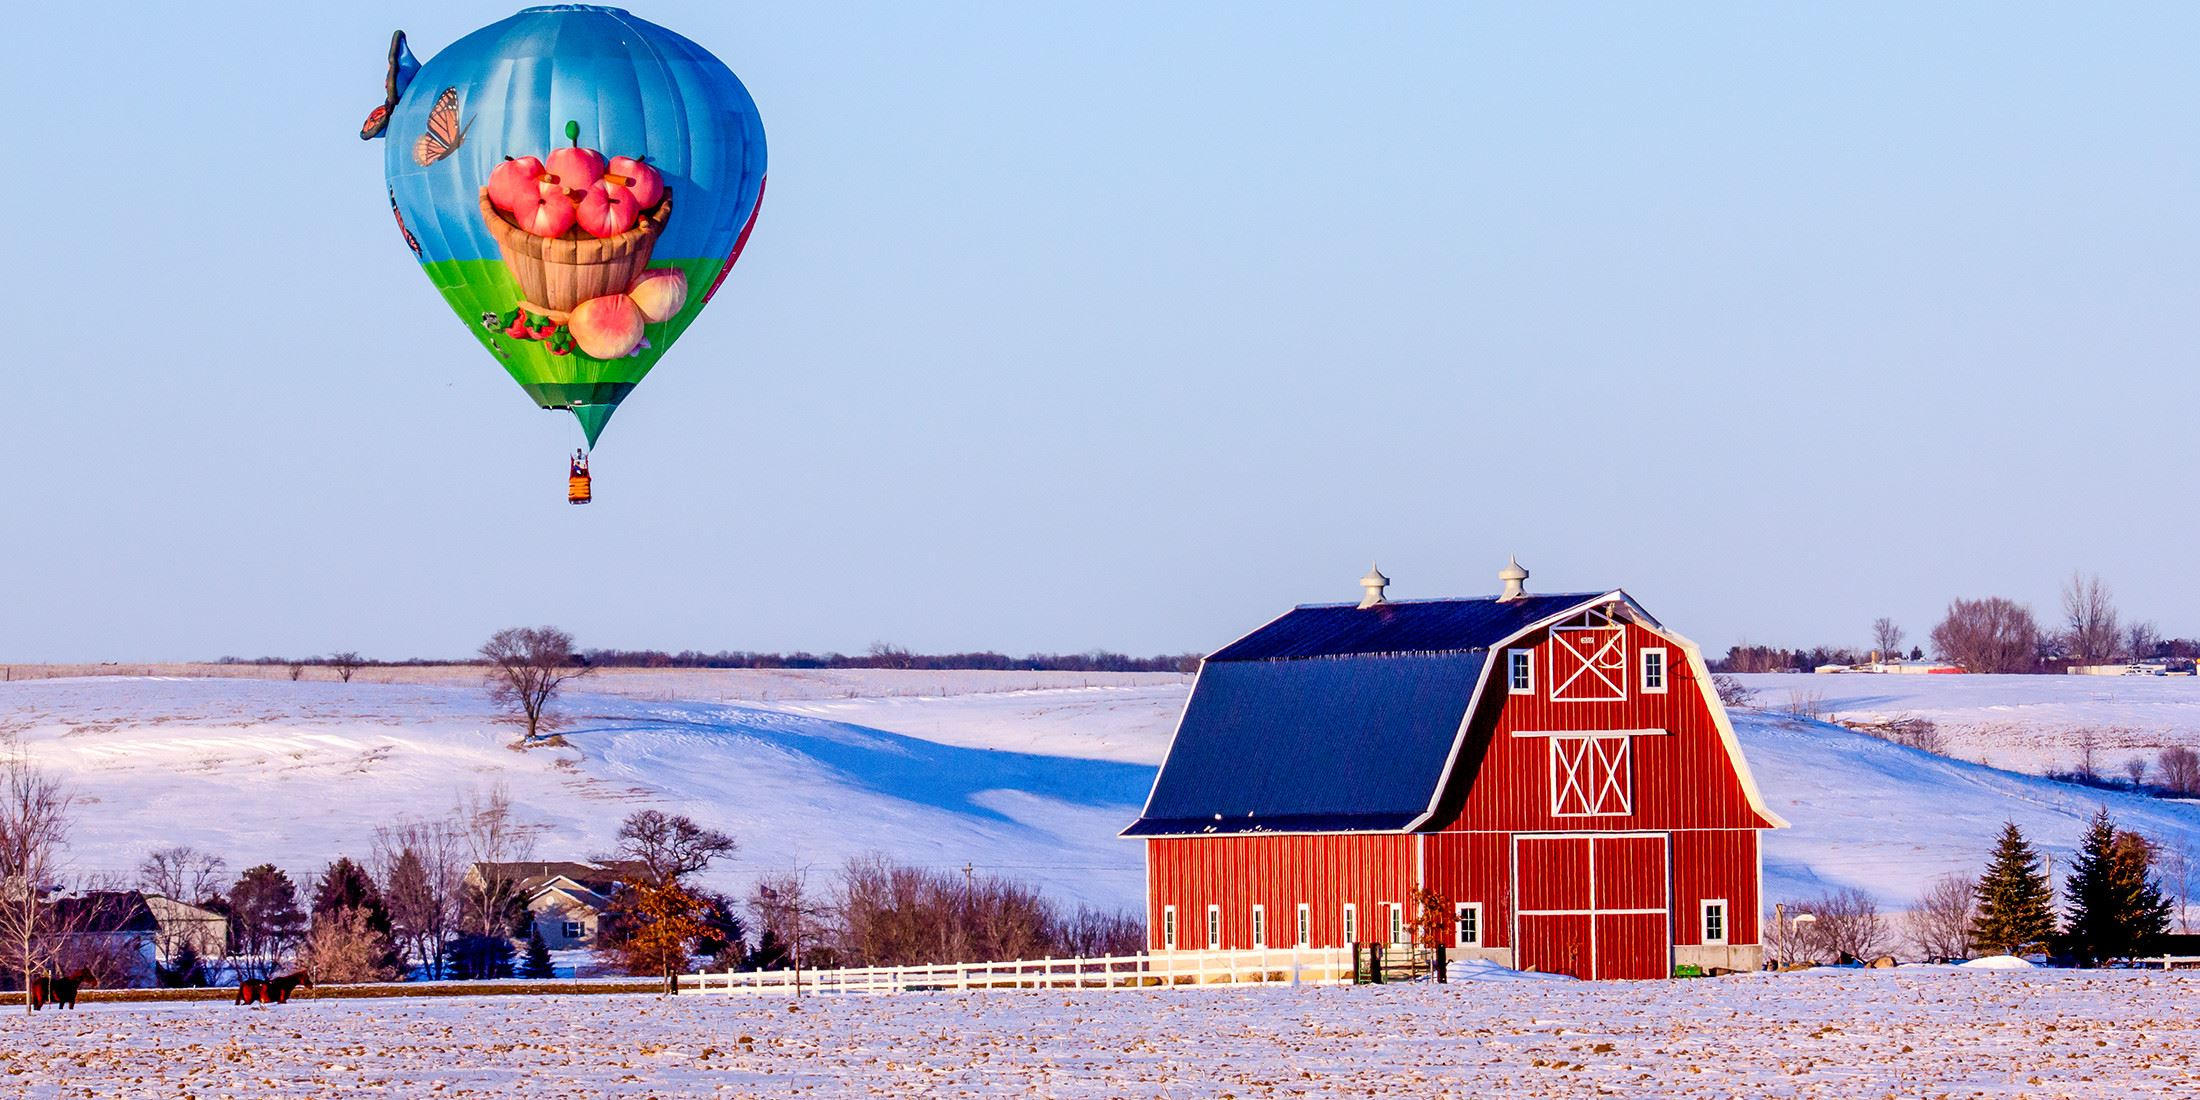 Barn and Hot Air Balloon